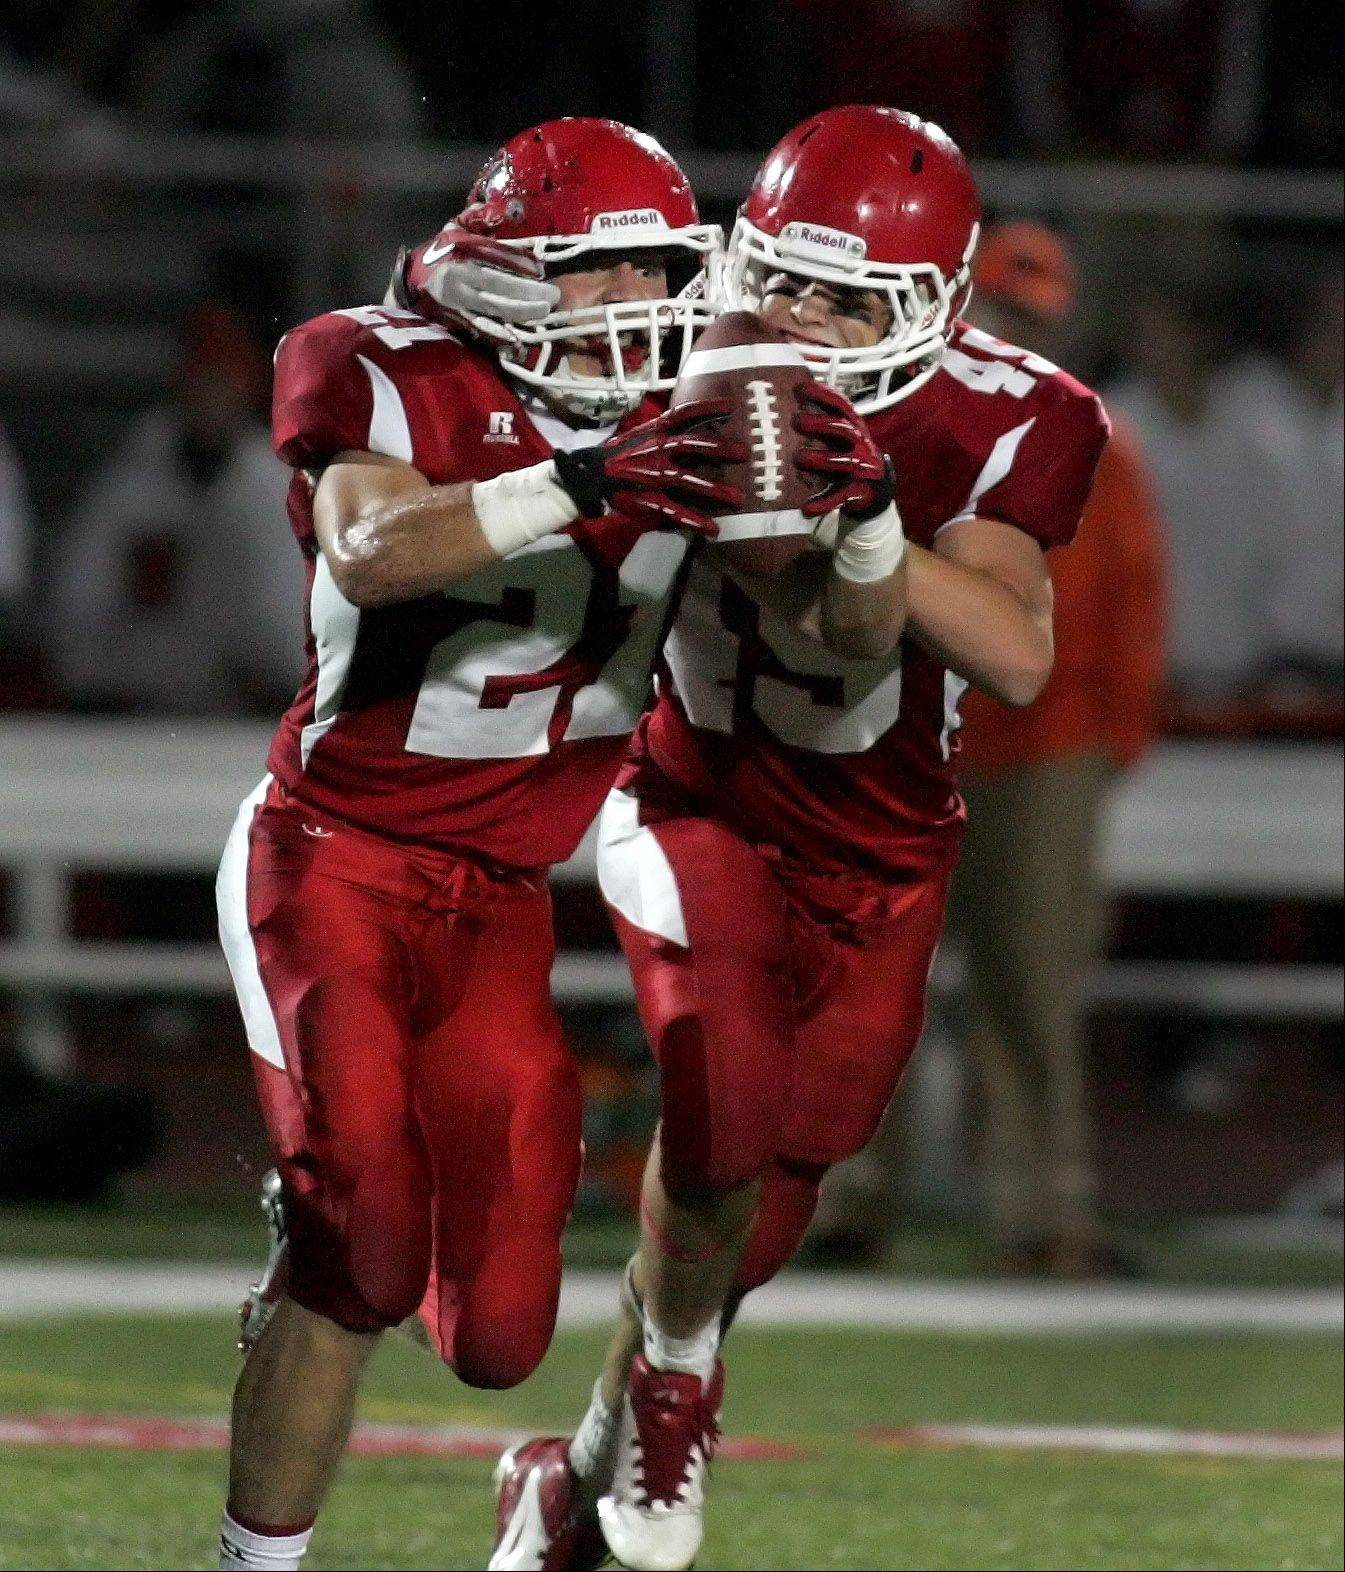 Justin Markham, left, and Jack Wooldridge of Naperville Central, celebrate an interception by Markham against Wheaton Warrenville South.